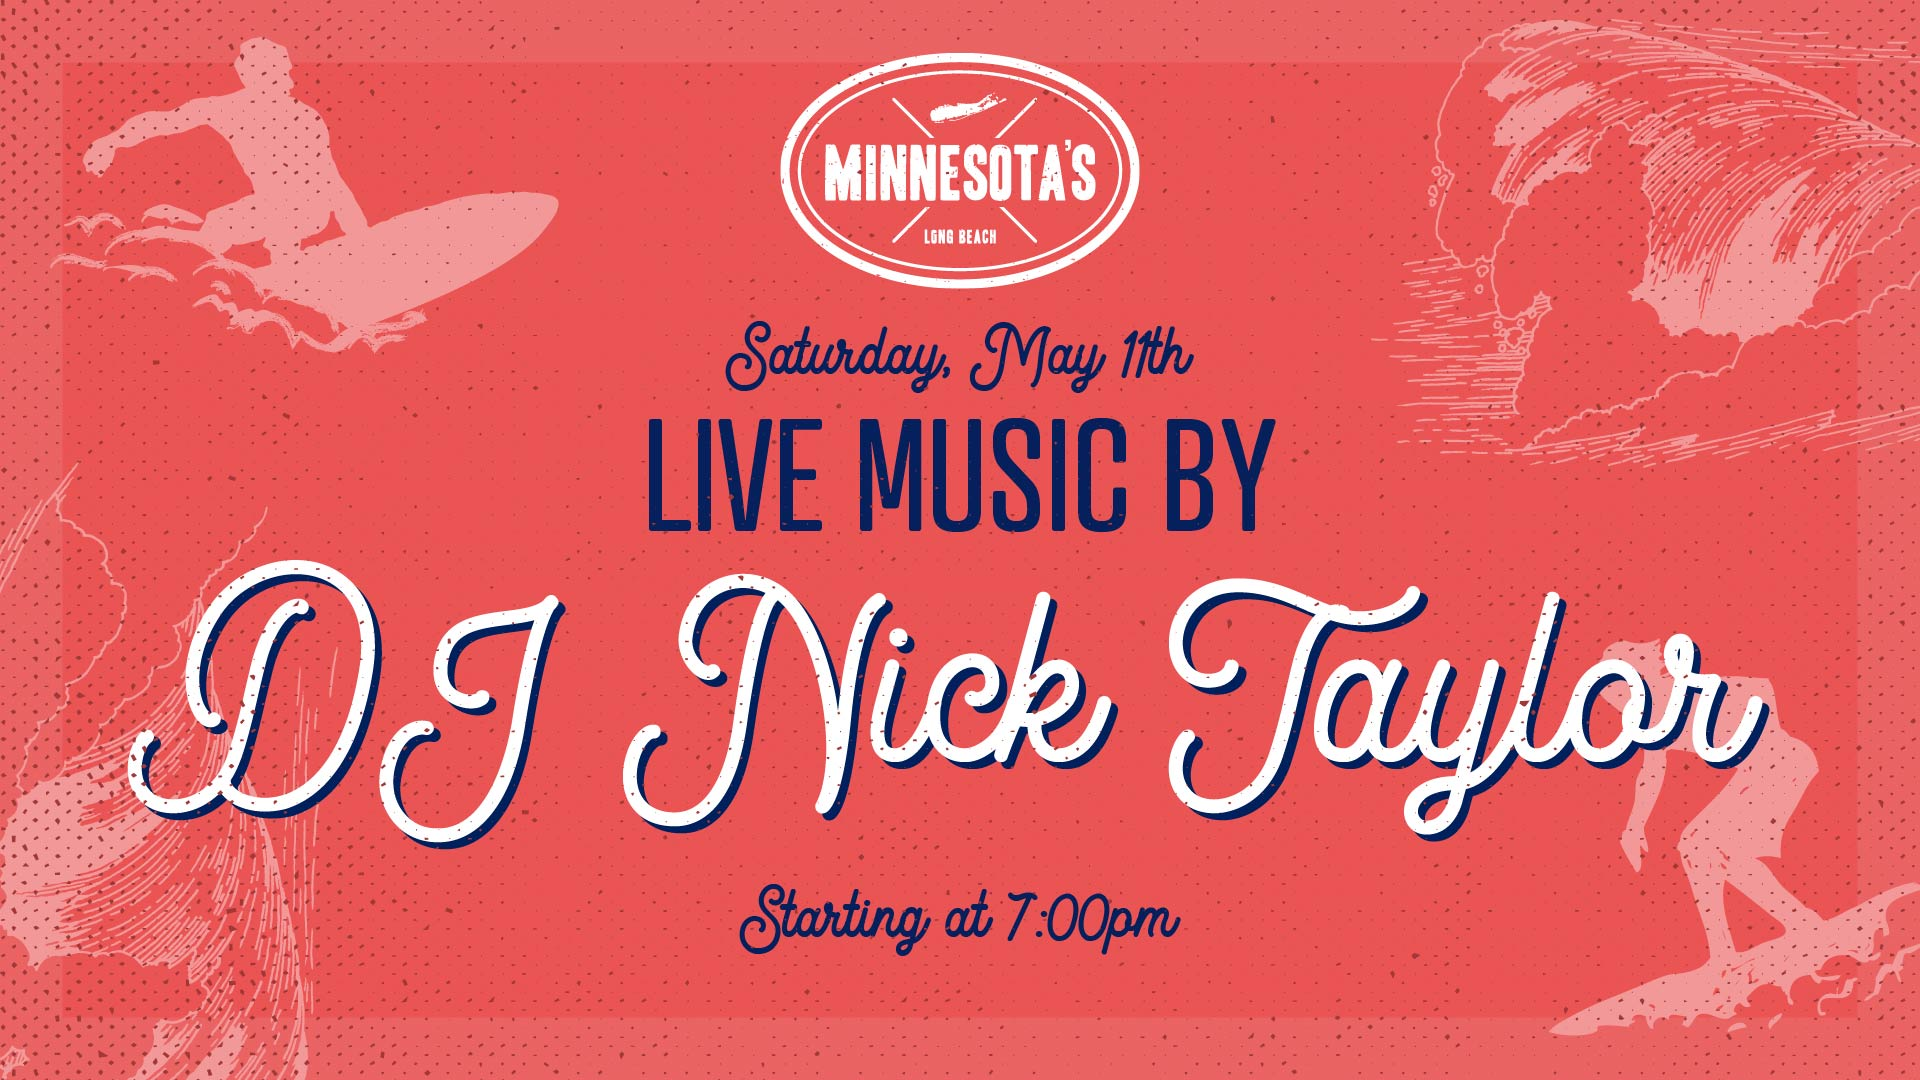 flyer for live music by Dj Nick Taylor at minnesotas on may 11th at 7pm